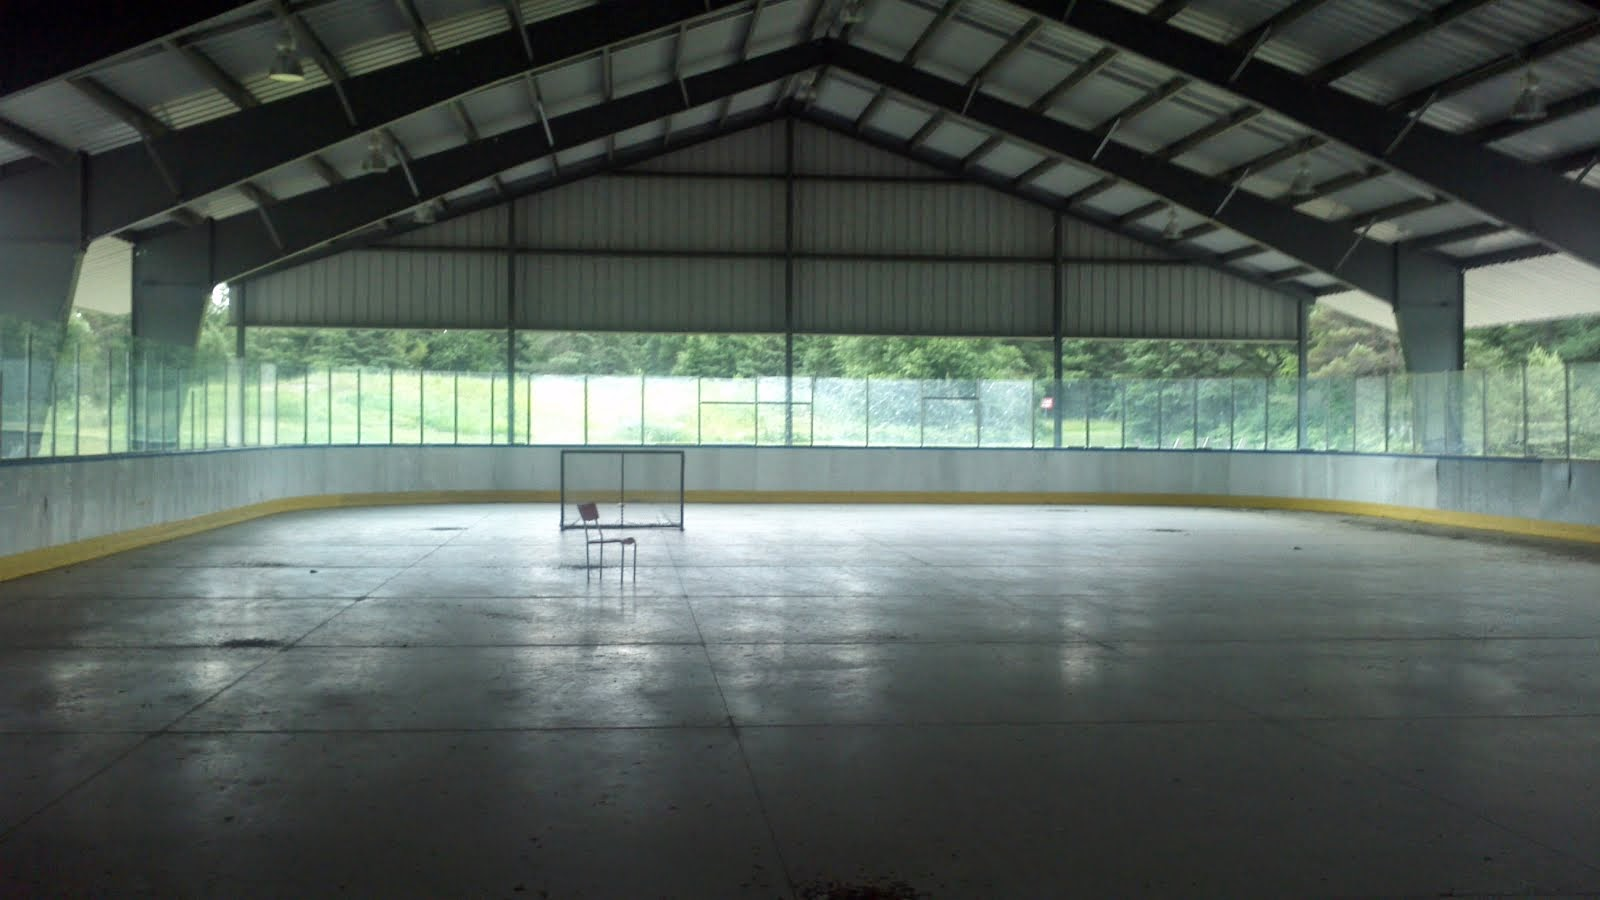 KW Bike Polo Club: Outdoor Covered Rink